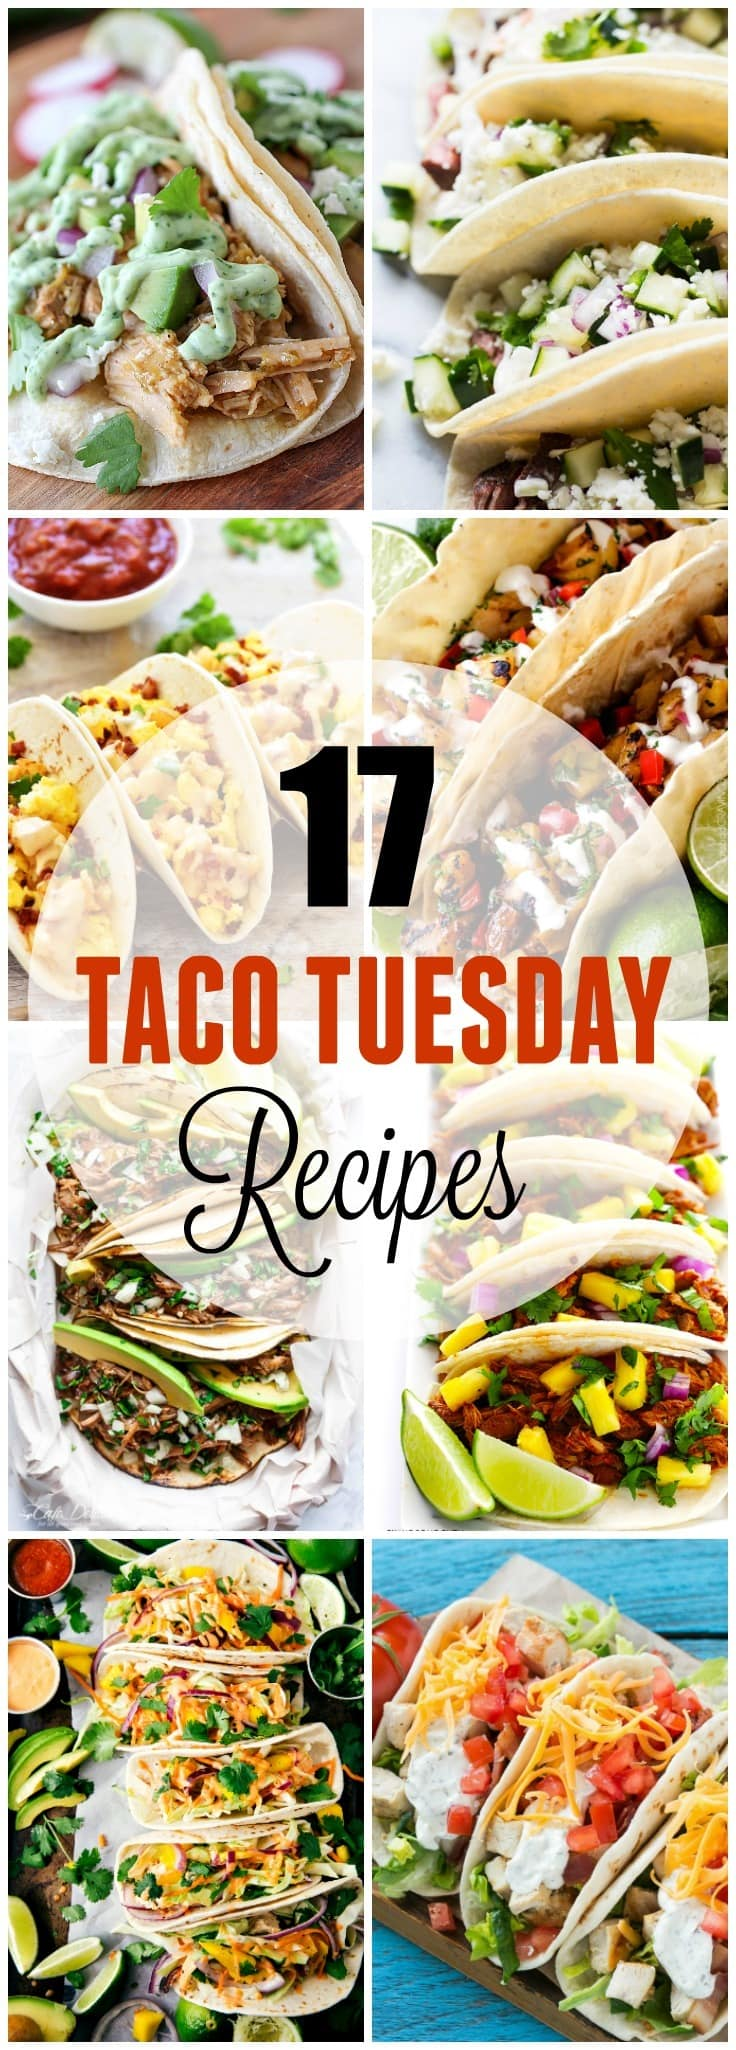 Dress Up Taco Tuesday With These 17 Creative Taco Tuesday Recipes Several Unique